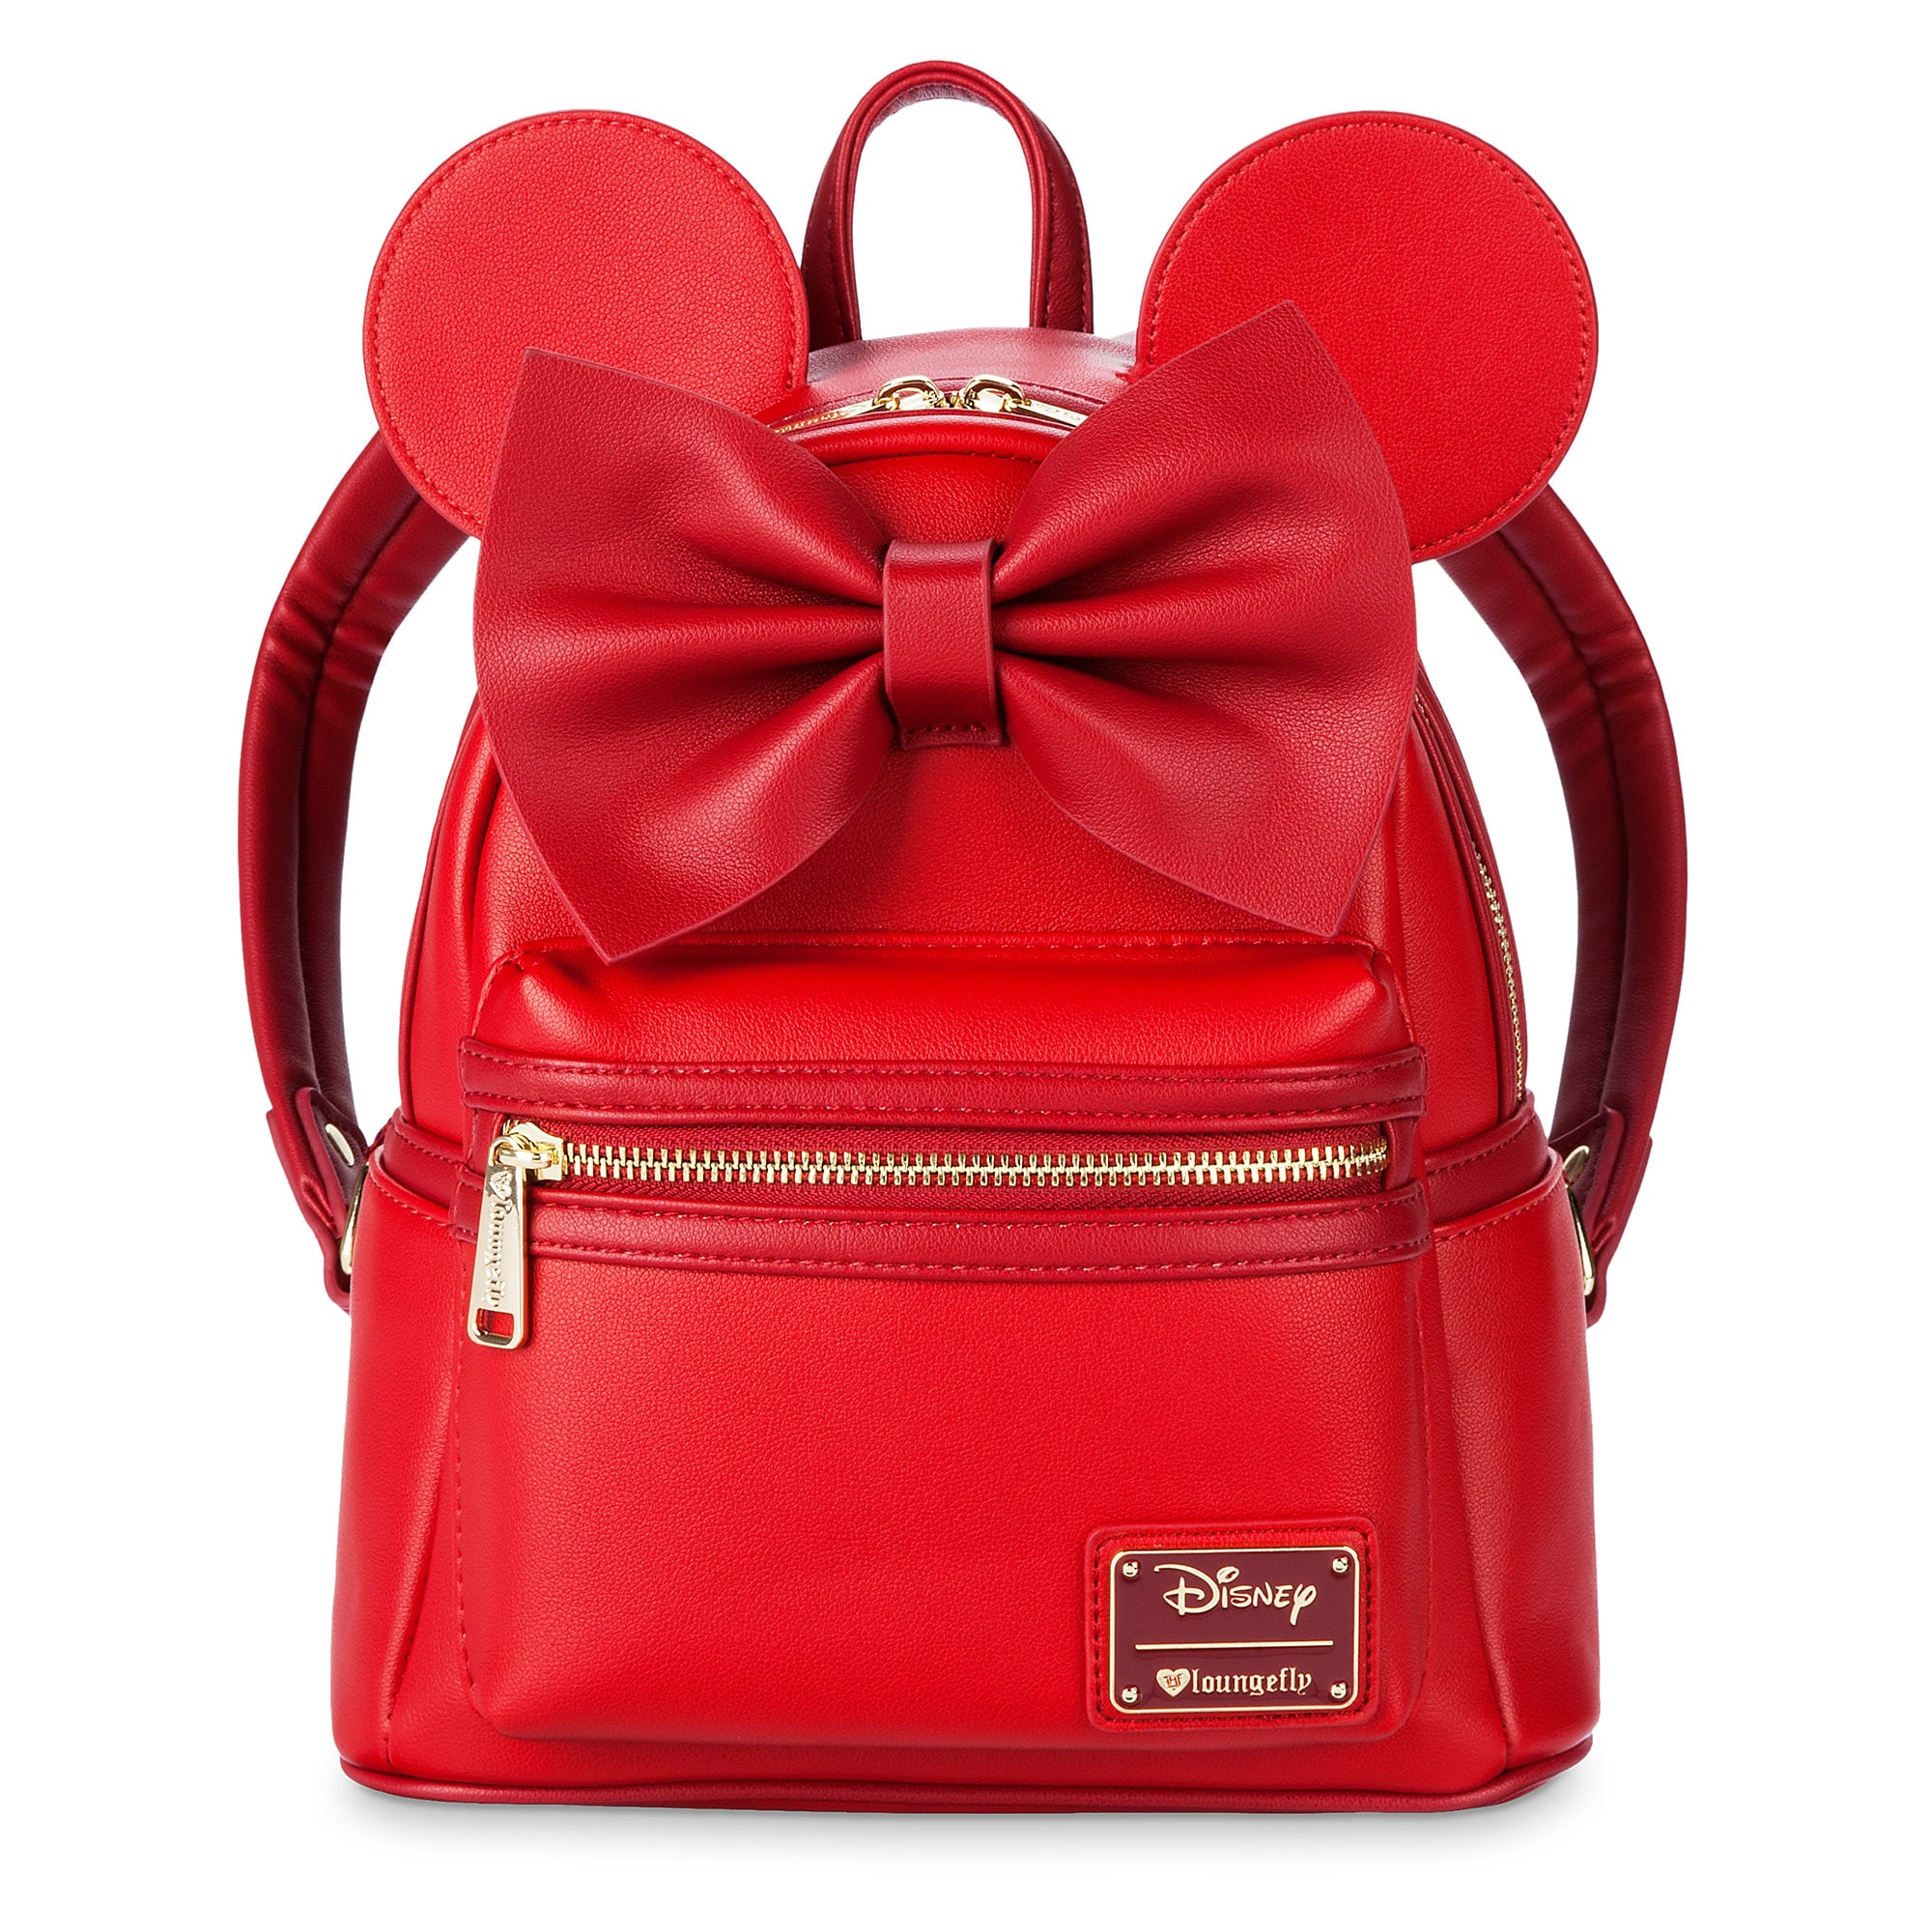 1041a7f4ae Minnie Mouse Mini Backpack by Loungefly - Red